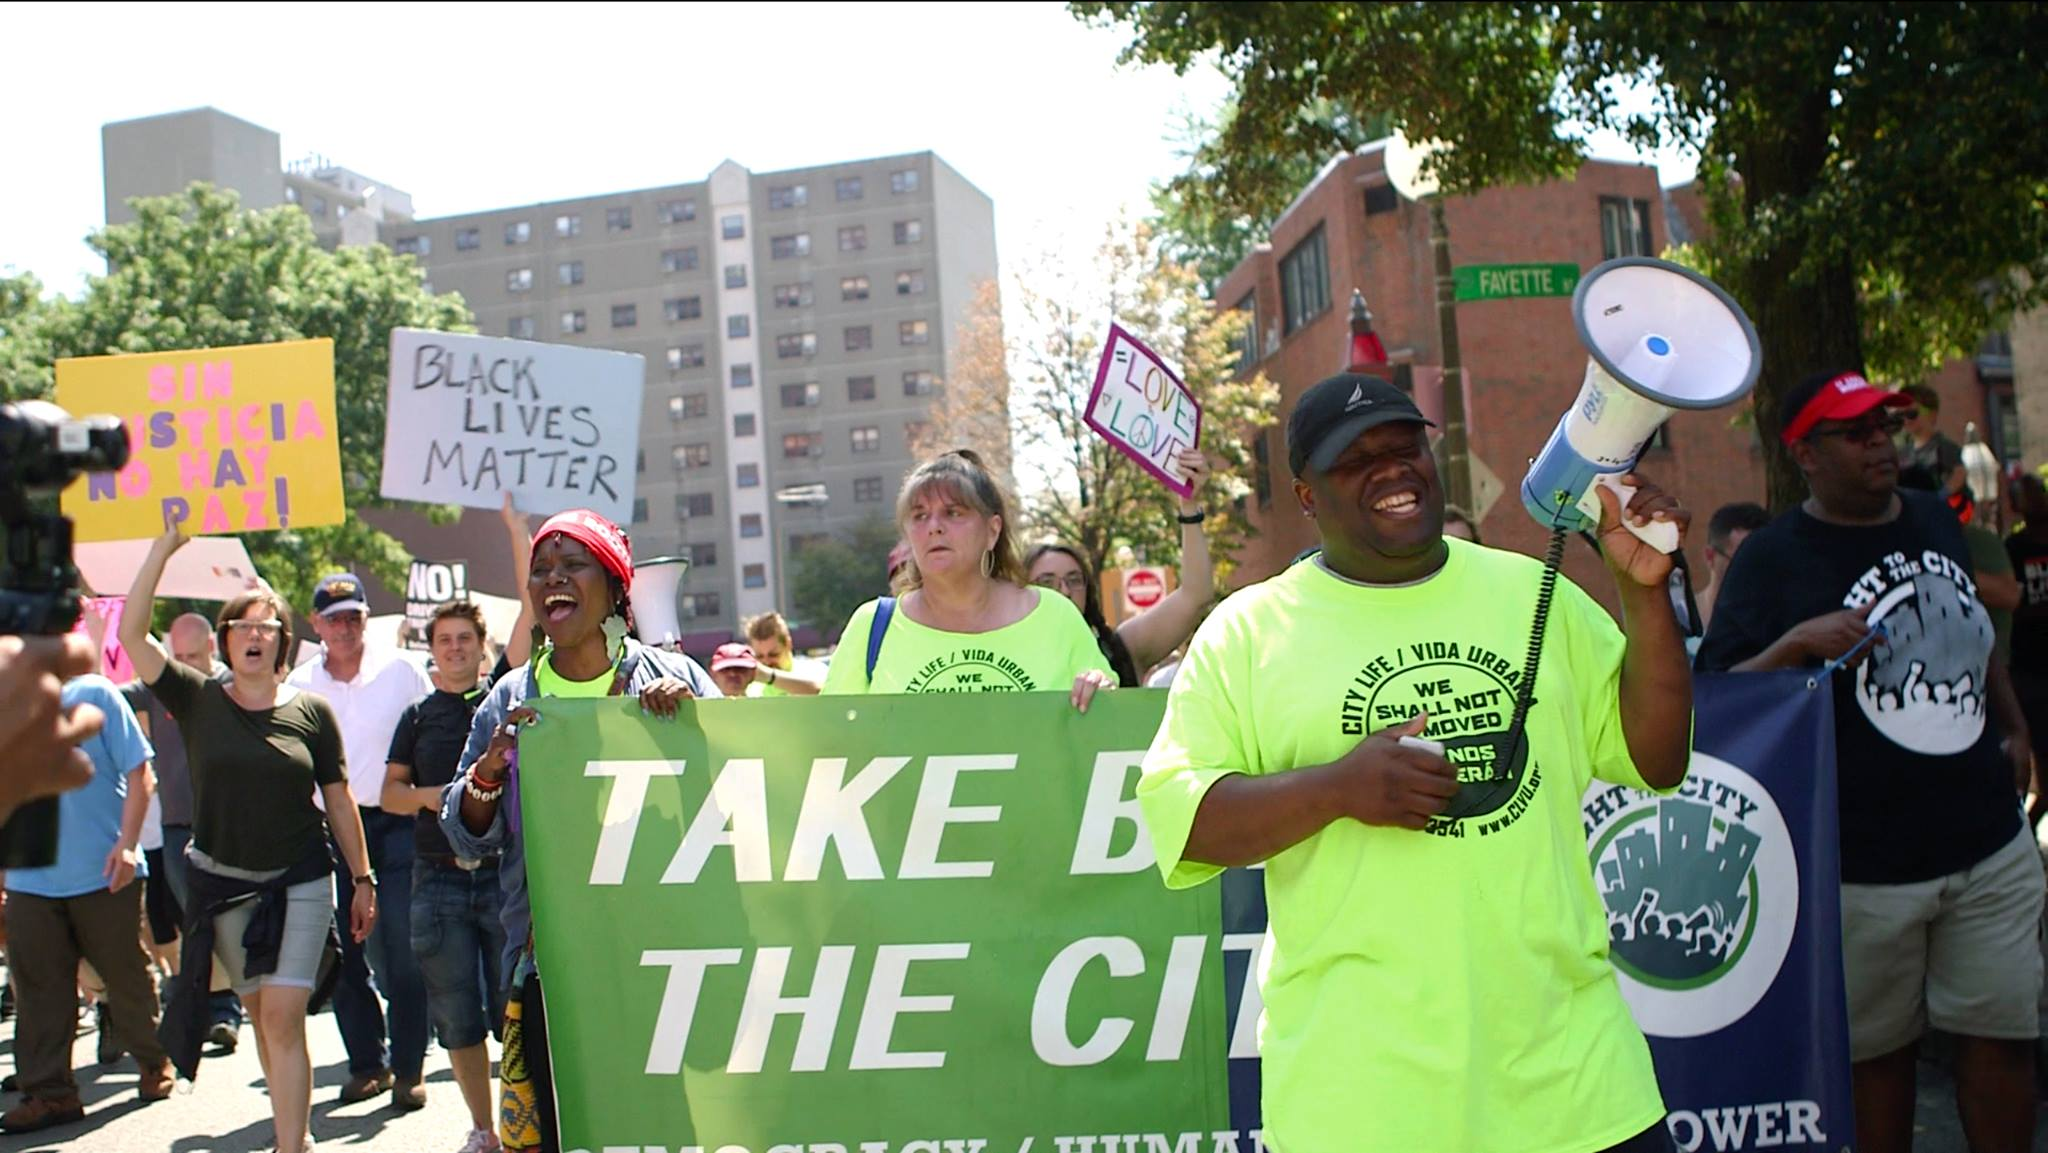 City Life/Vida Urbana supports renters facing unjust eviction